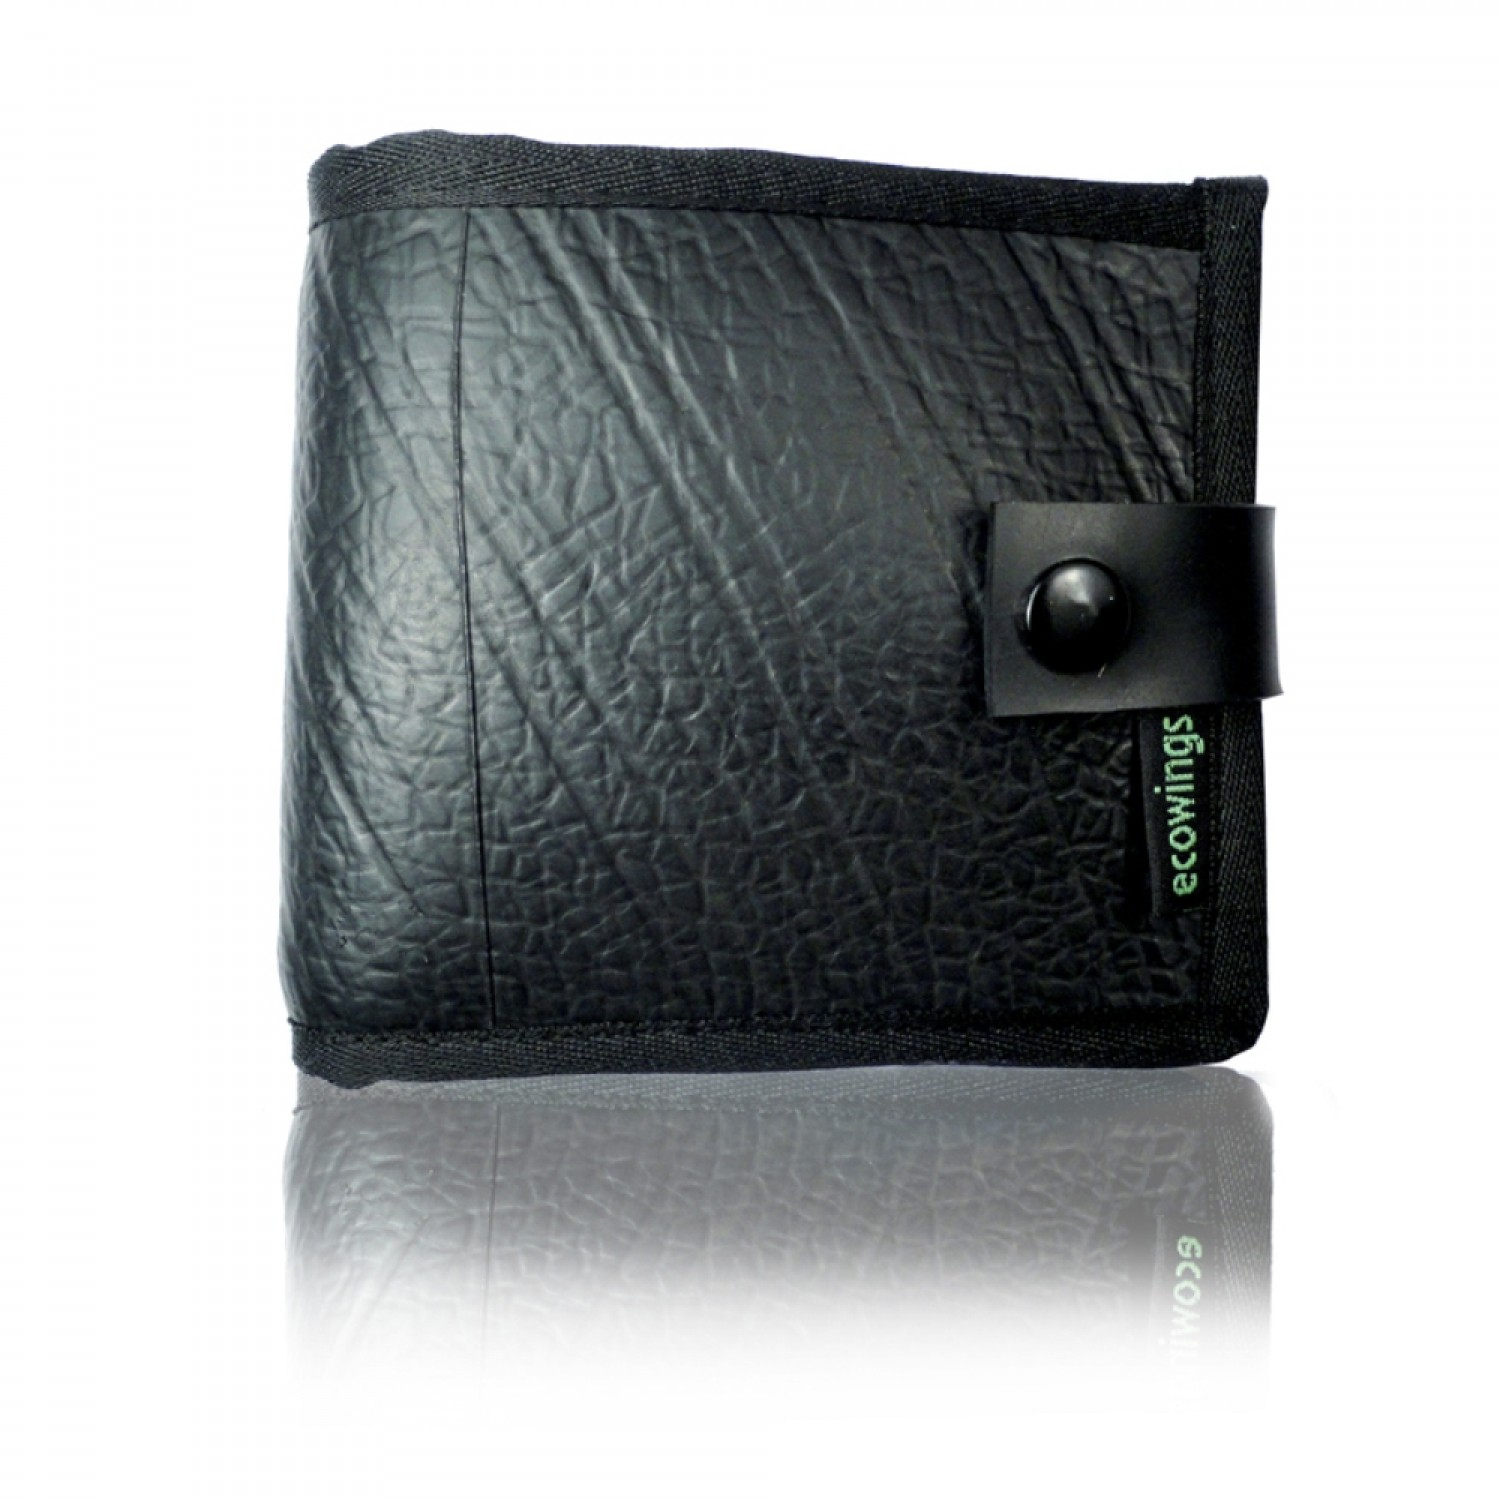 Men's Wallet 'Black Buck' recycled inner tube | Ecowings